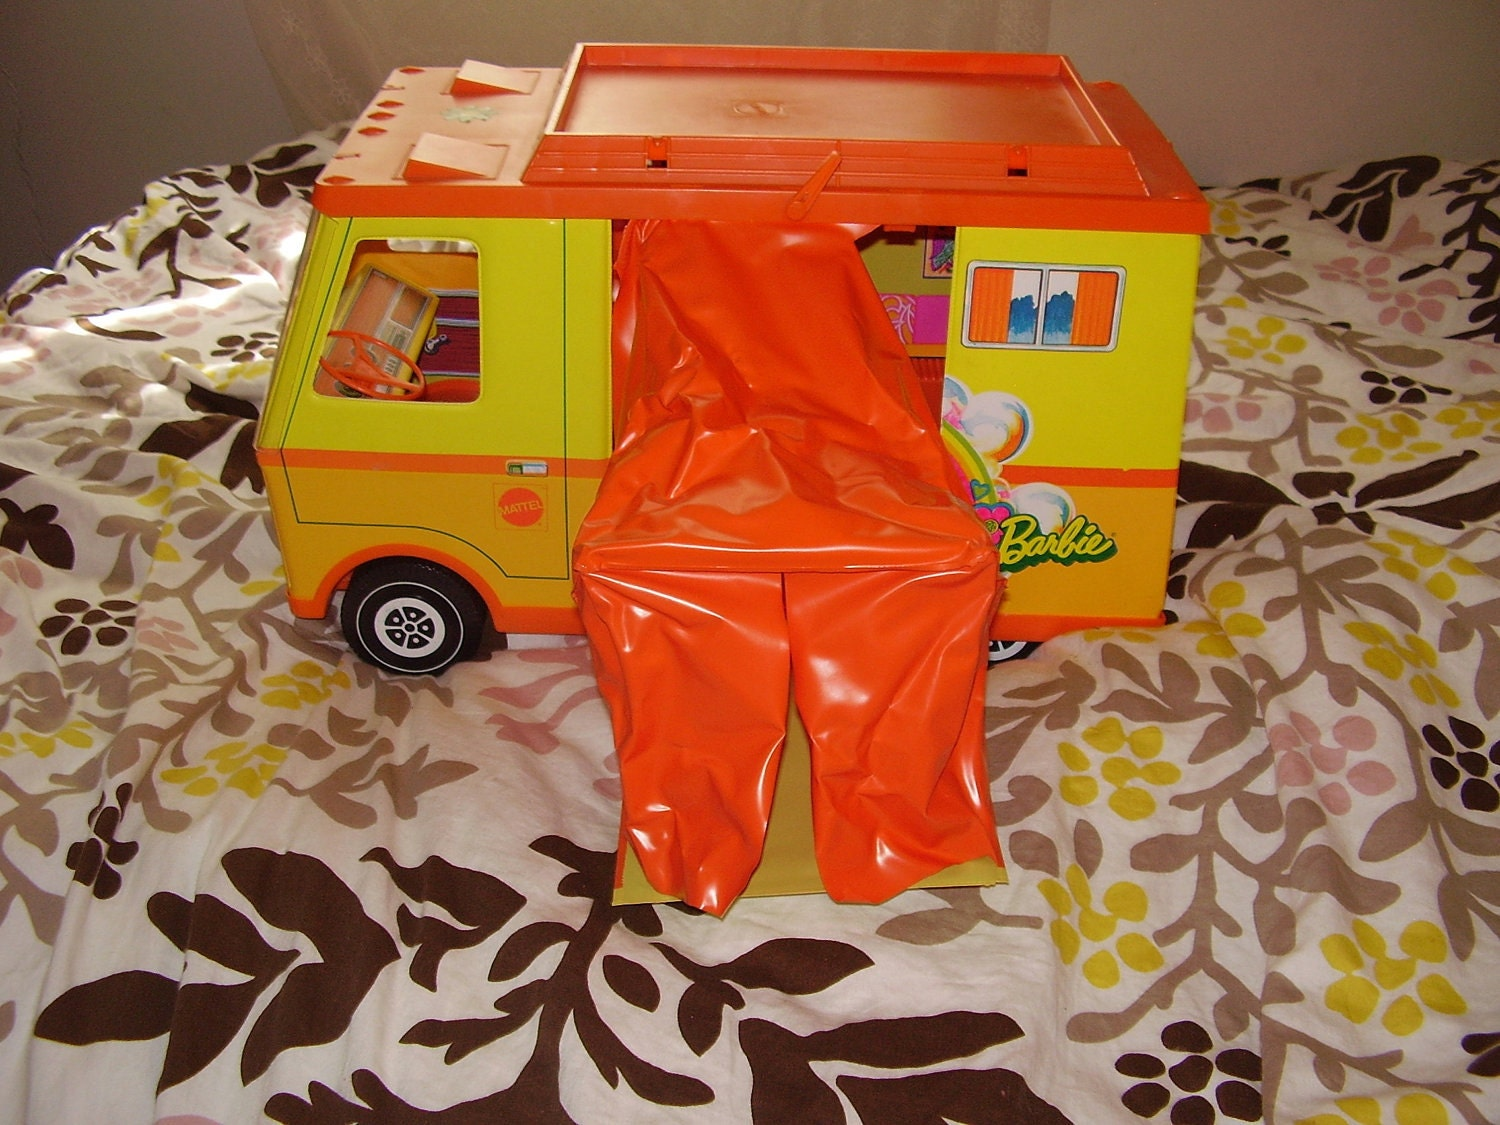 Hippie Barbie Camper Van 1970s In Excellent Condition Includes